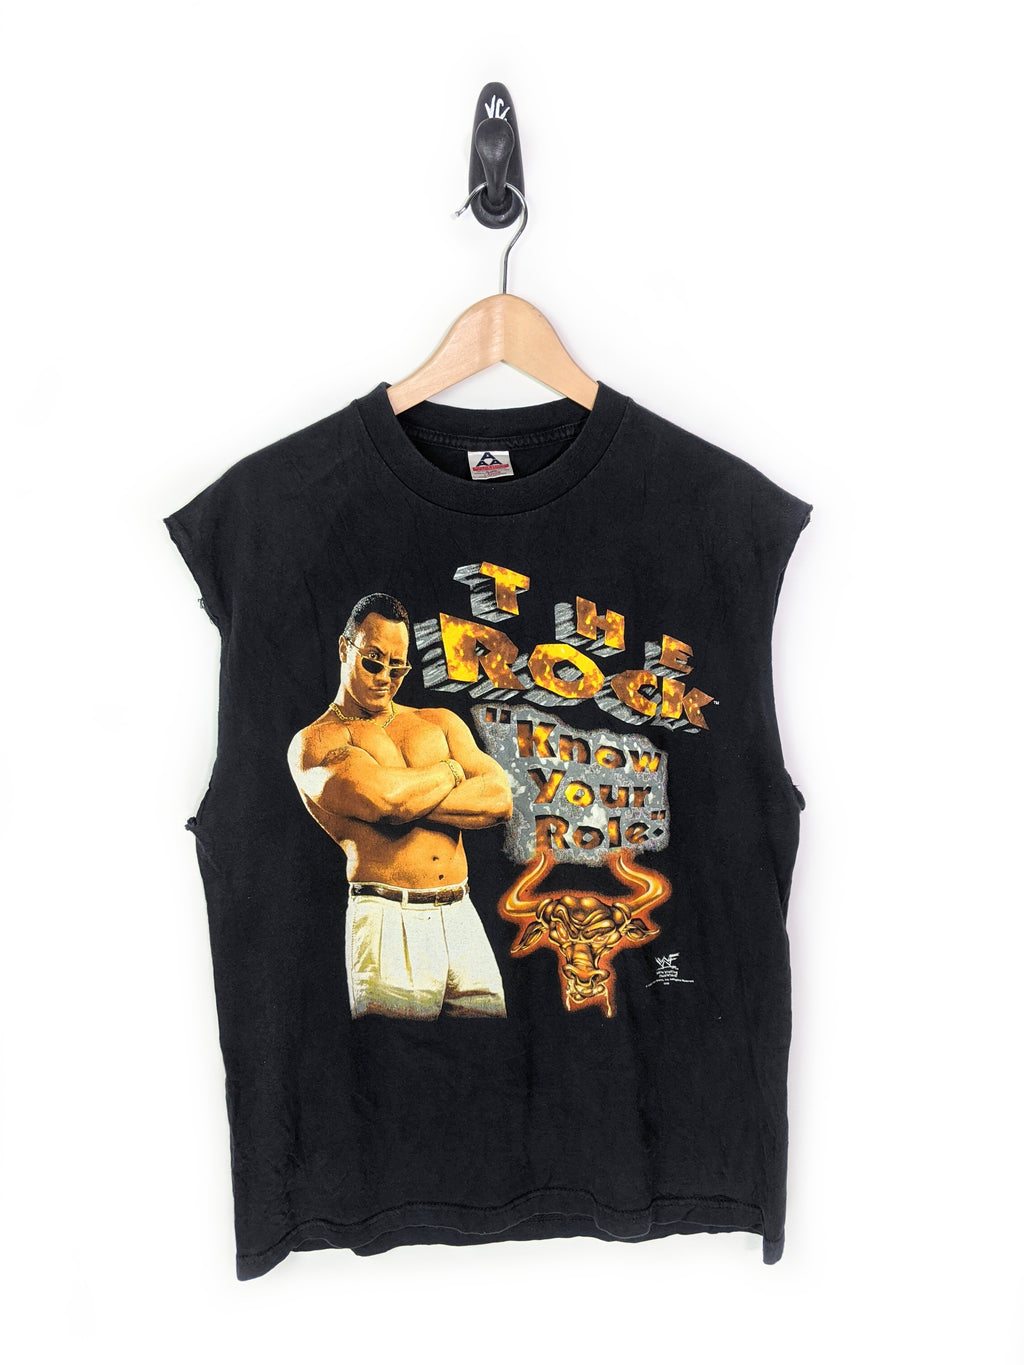 WWF The Rock Cut Off Tee (L)